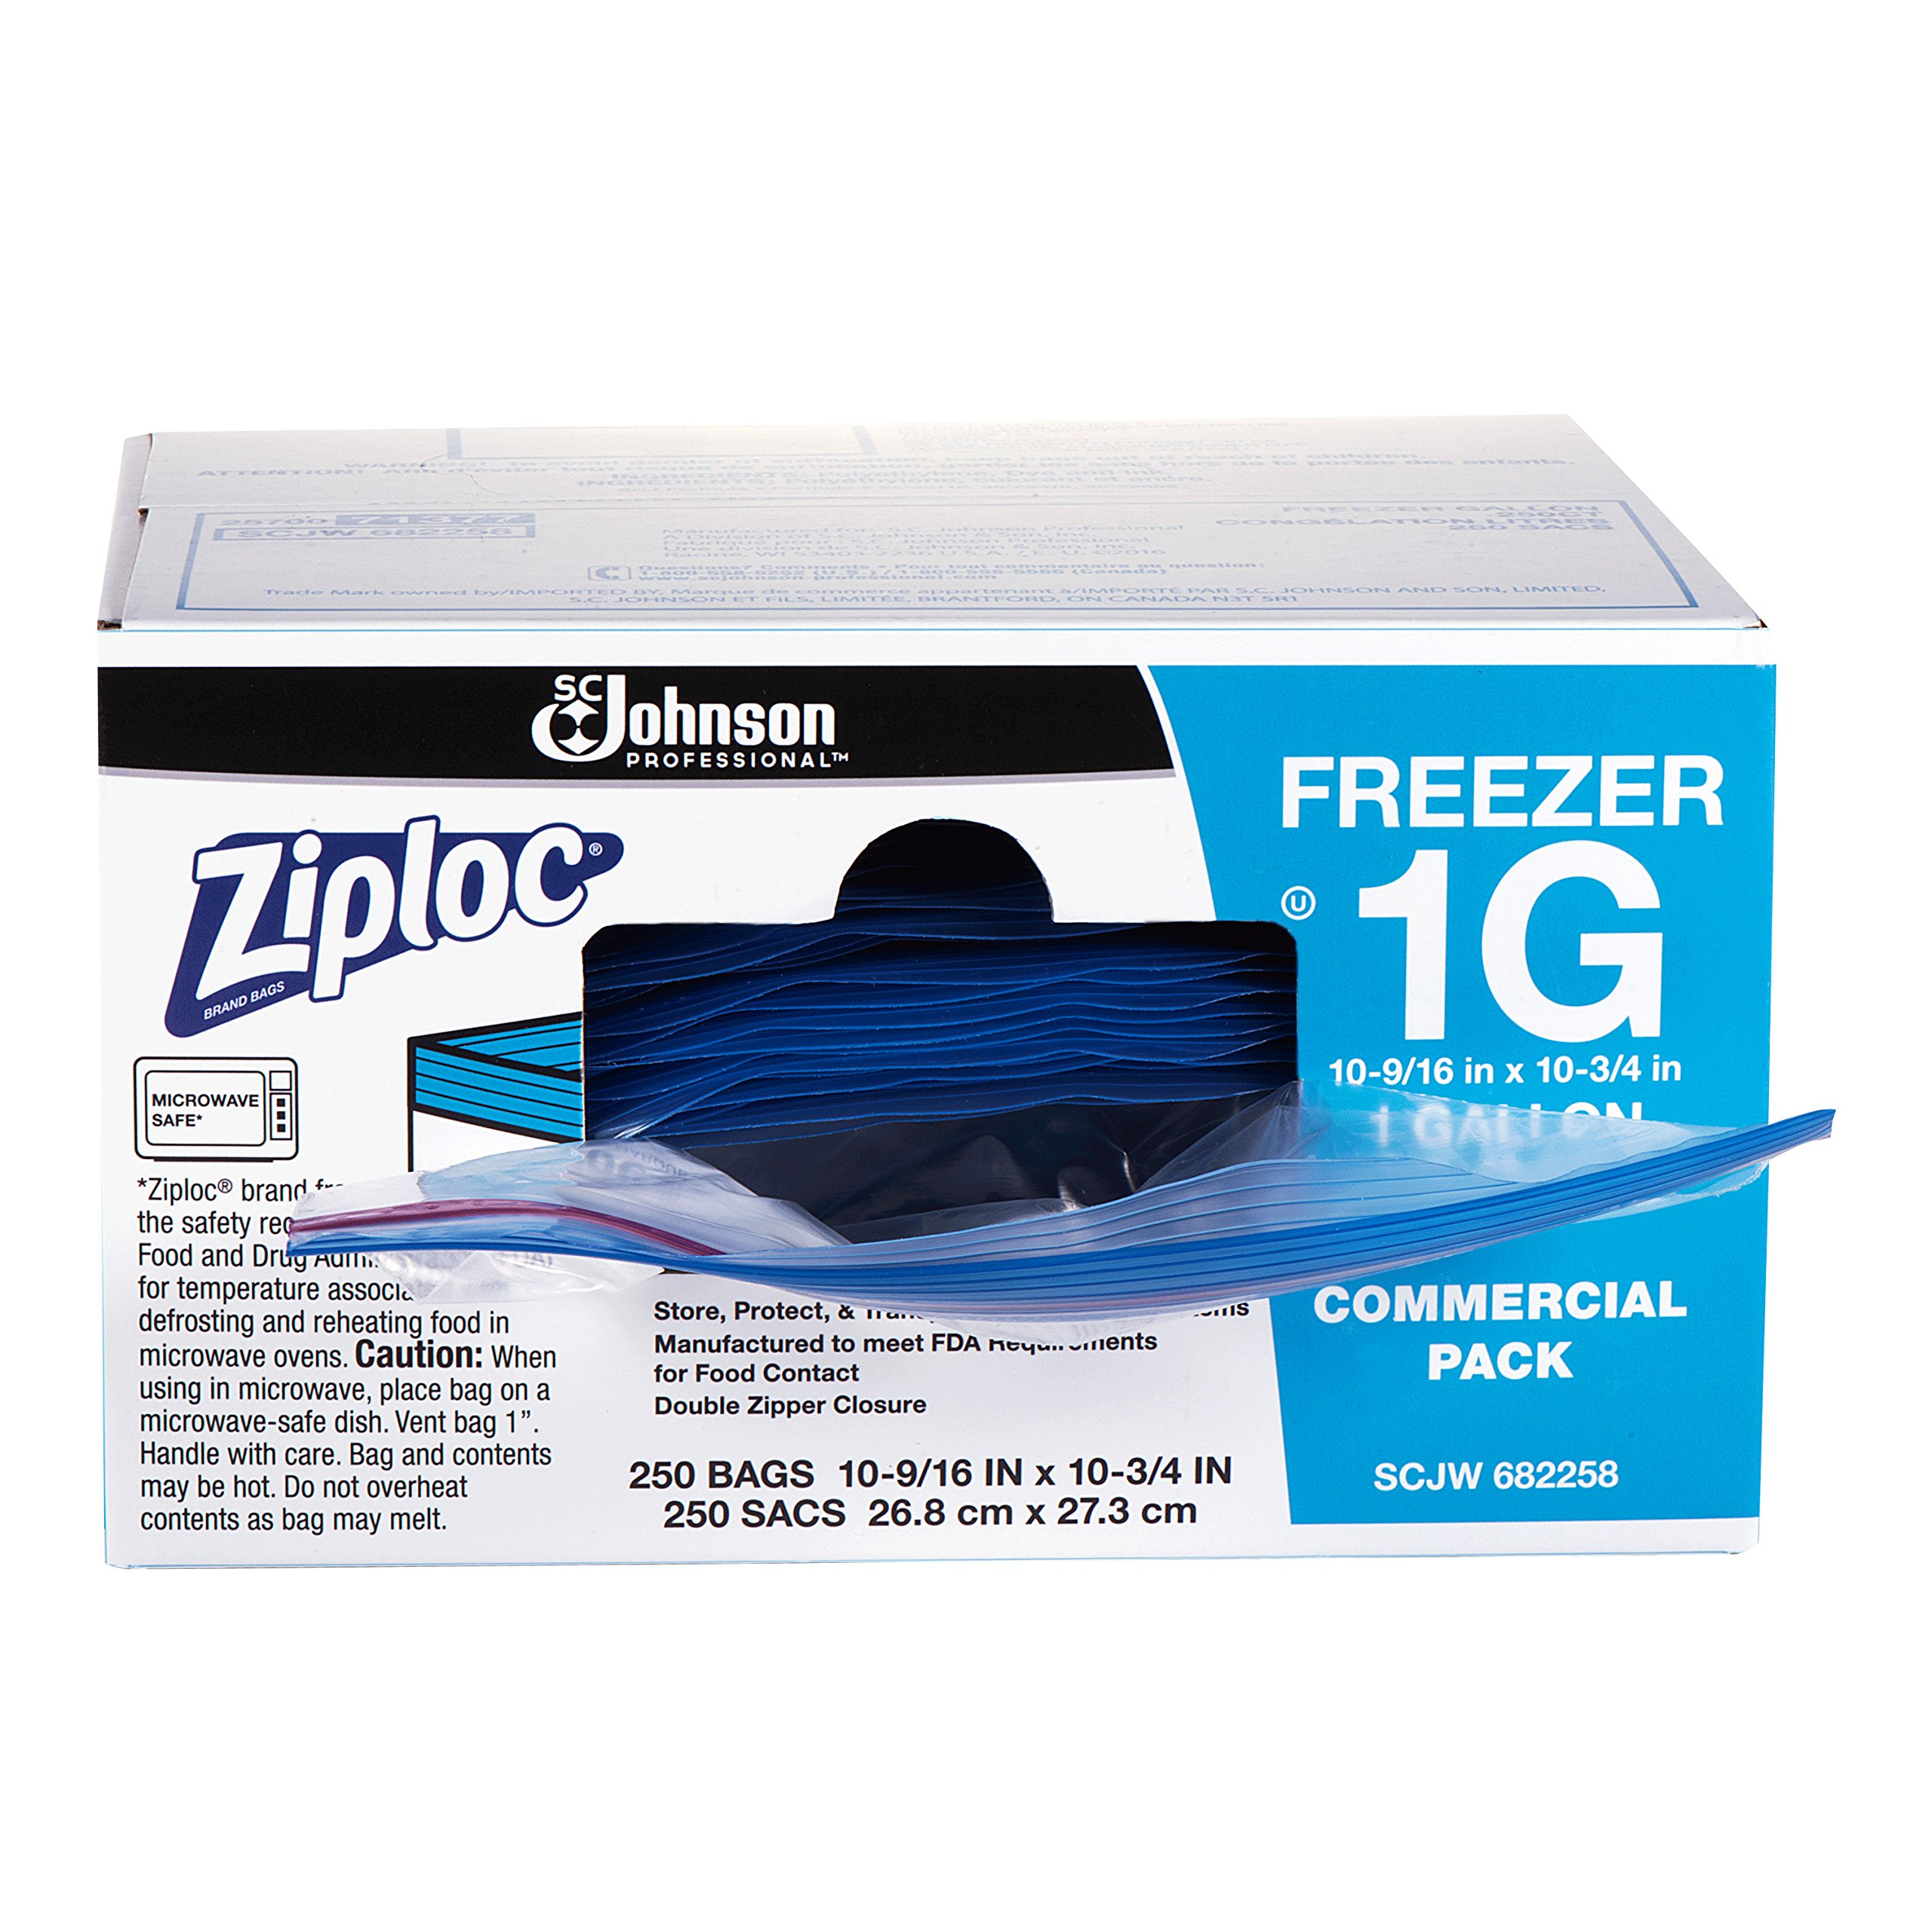 Ziploc Freezer Bag, 250 Count